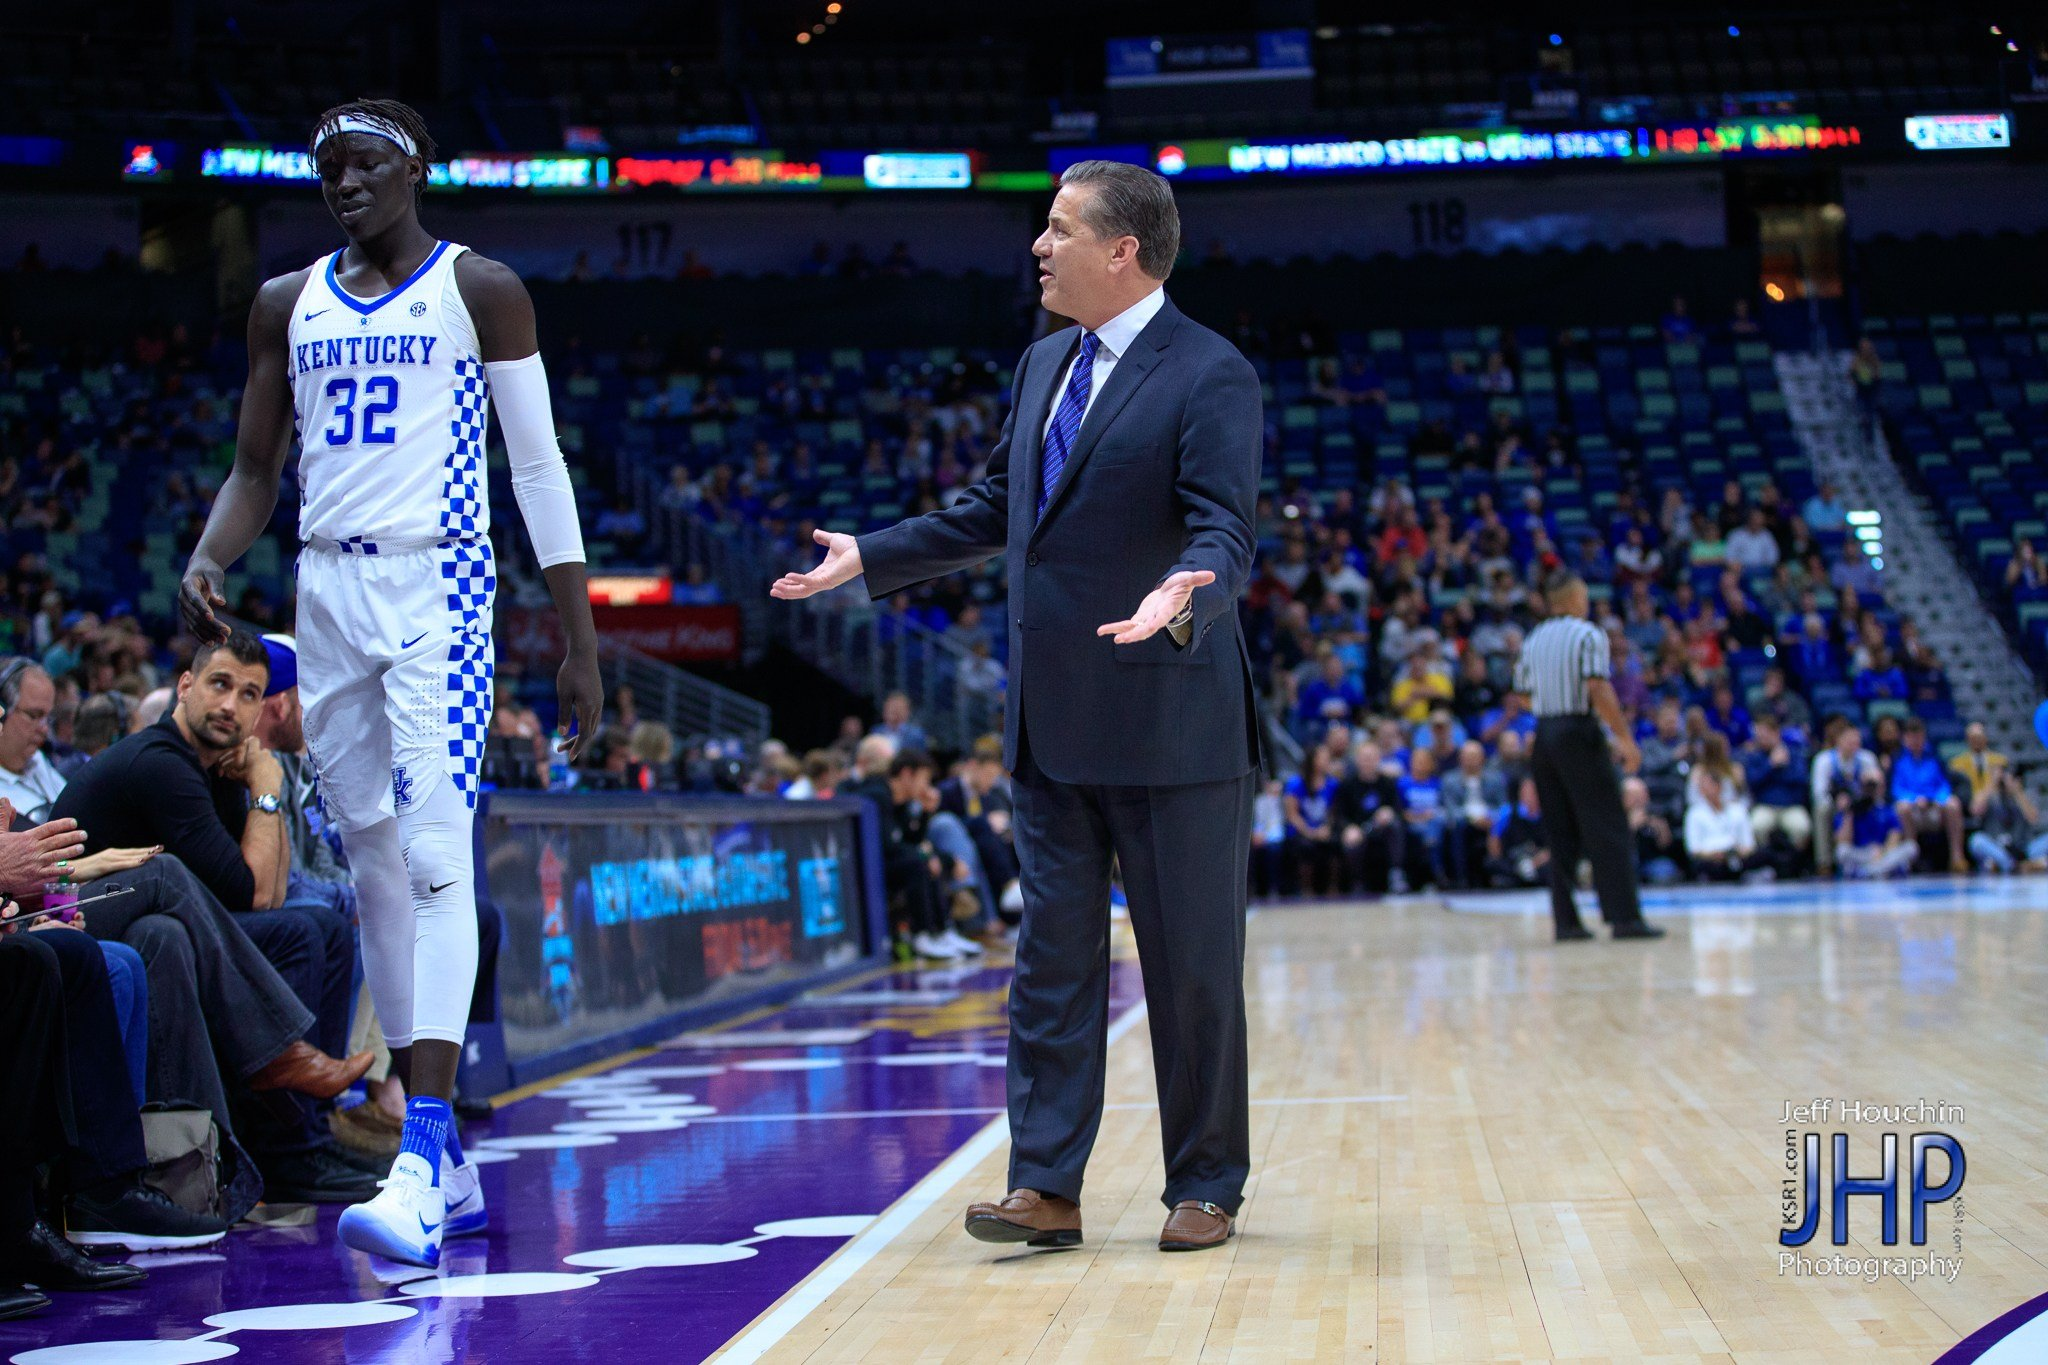 Kentucky coach John Calipari – and UK fans – have plenty of questions for Wenyen Gabriel and his teammates after Saturday's loss. But Calipari has shown he can turn regular-season losses into NCAA Tournament success. (Jeff Houchin Photo)